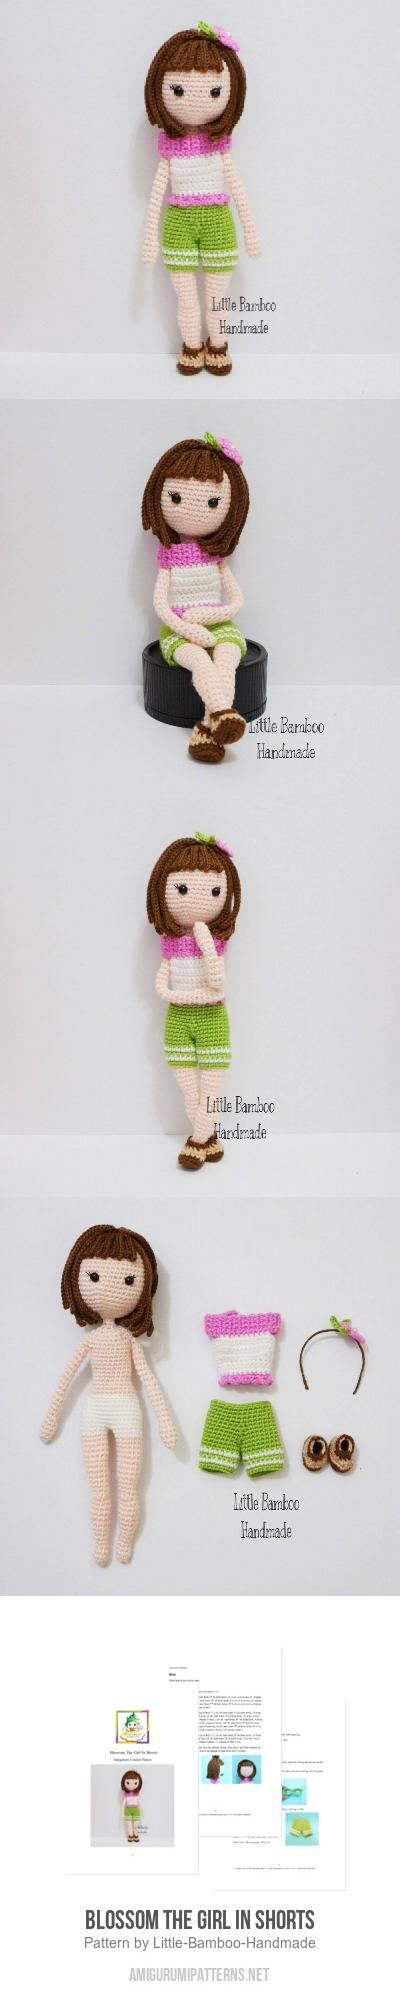 Blossom The Girl In Shorts amigurumi pattern